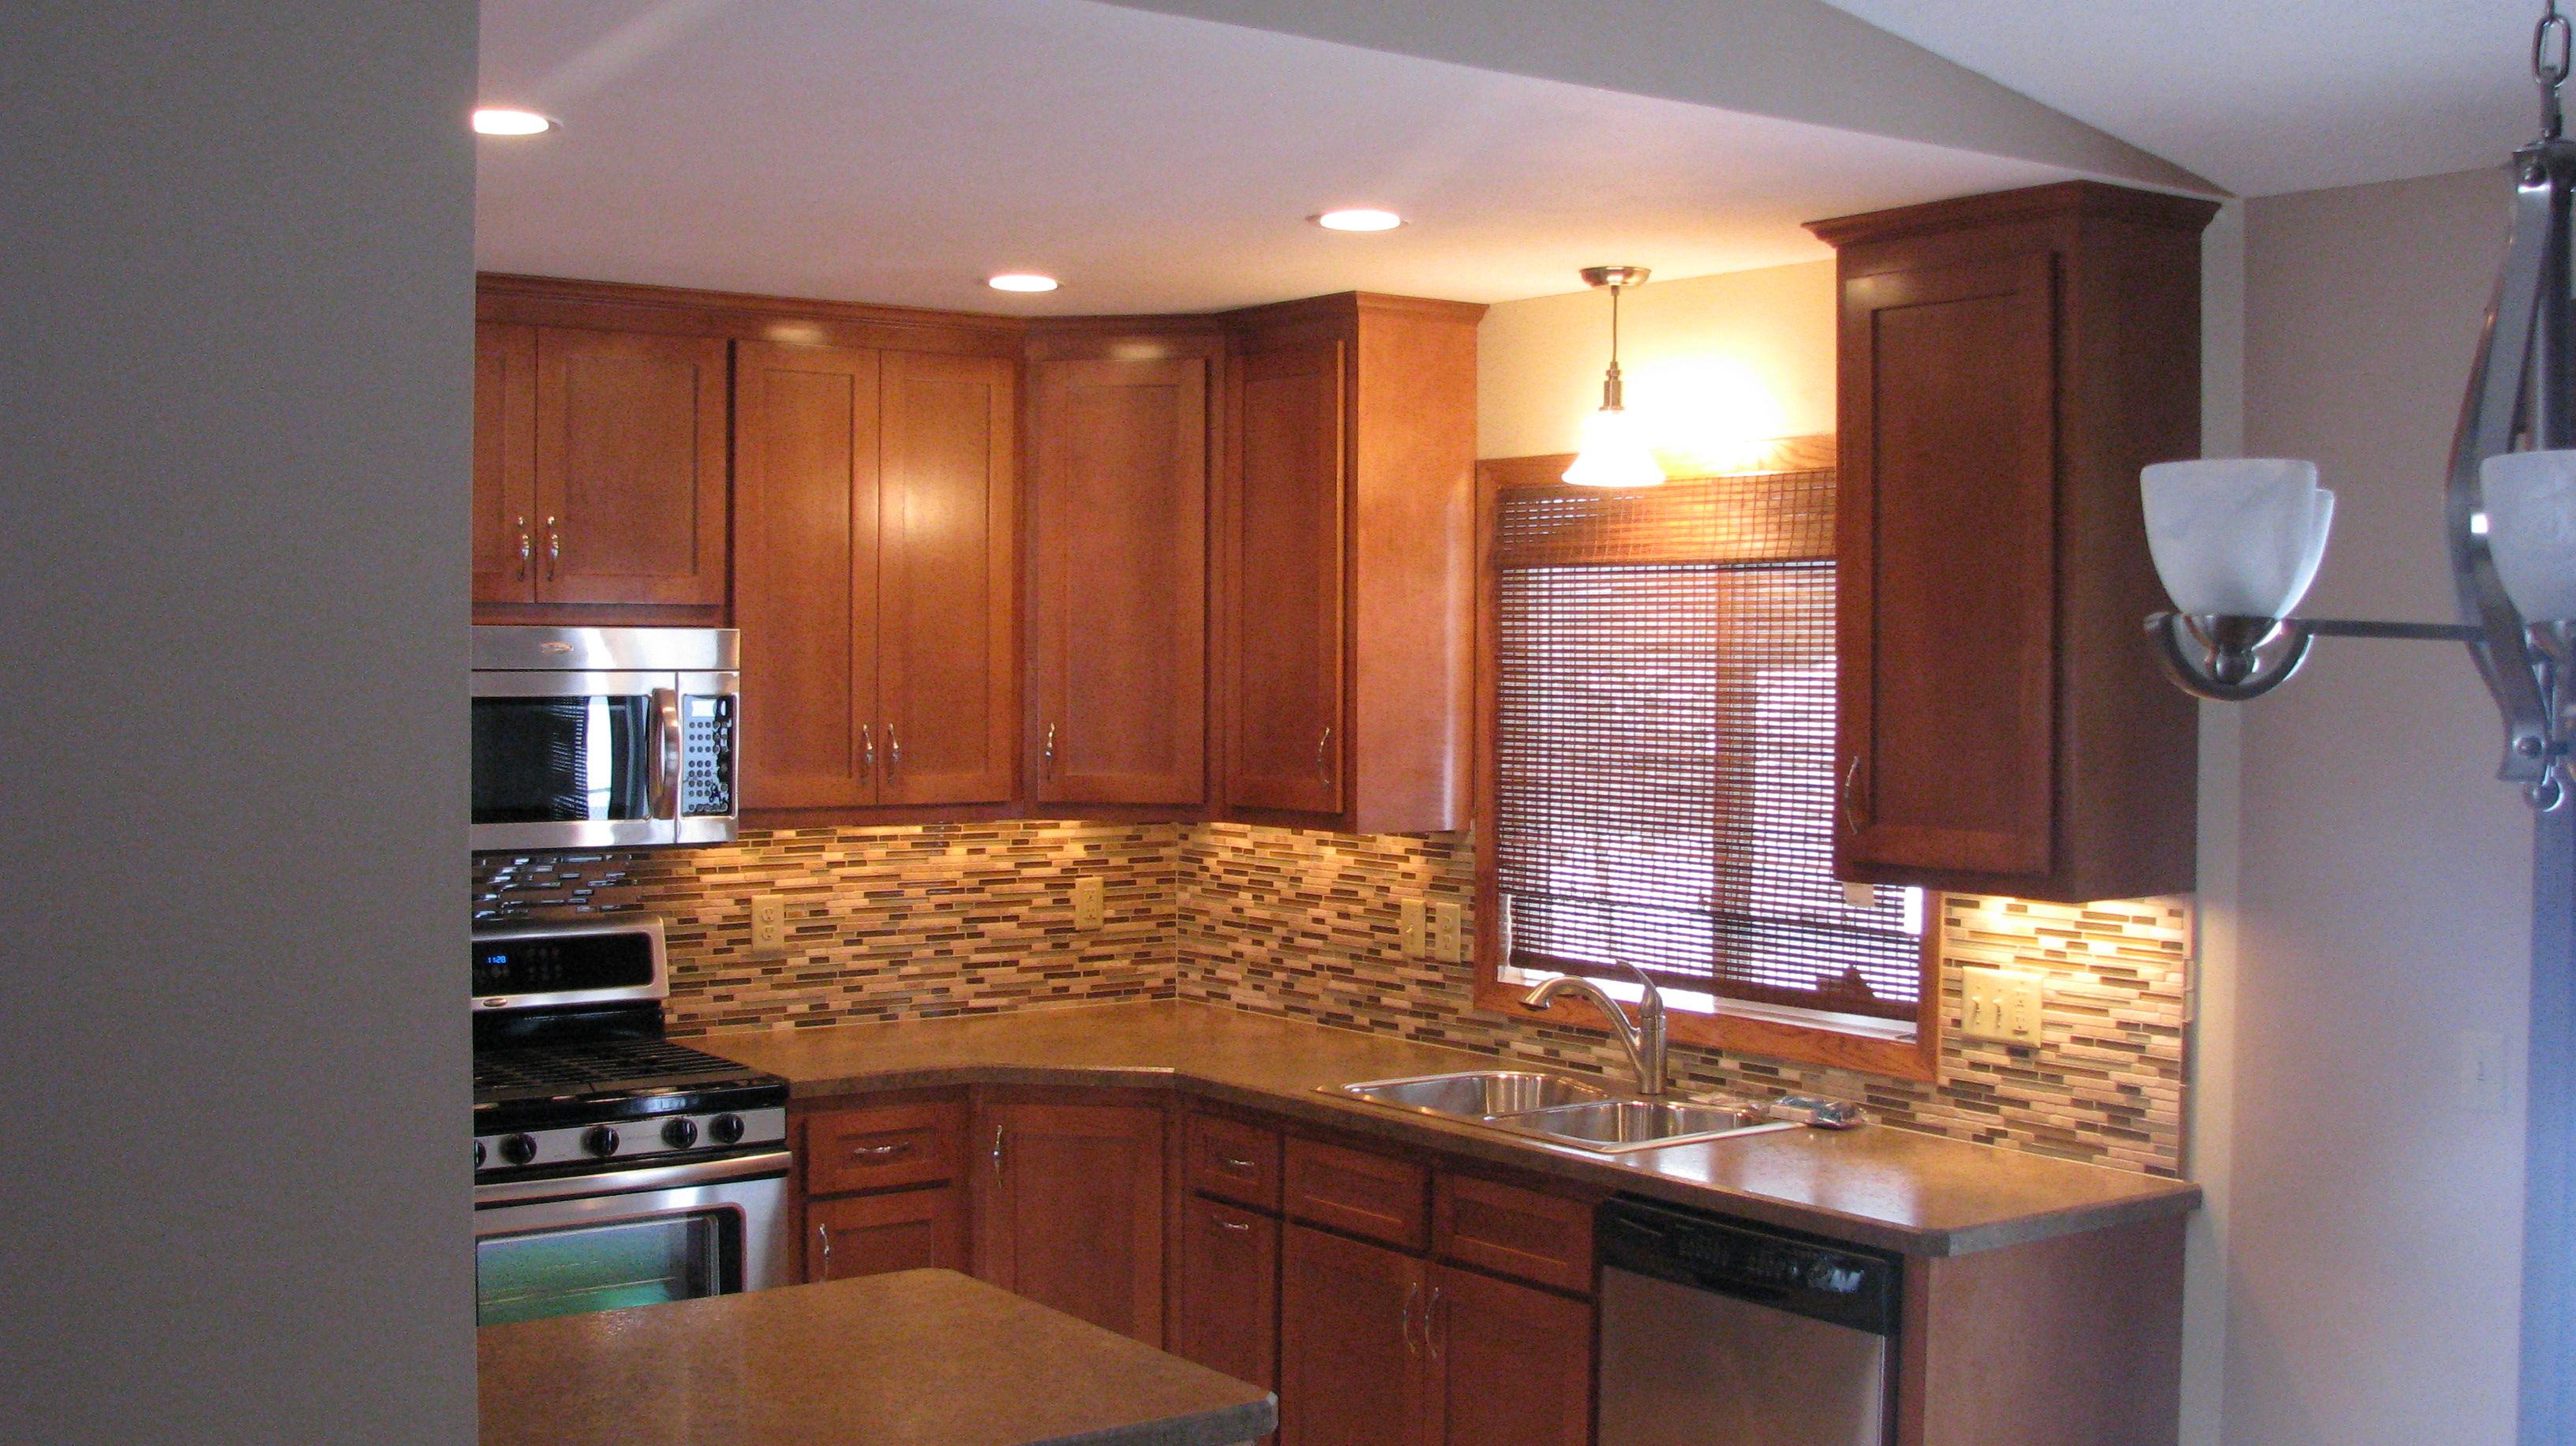 Split entry kitchen remodel remodeling kitchen for I kitchens and renovations